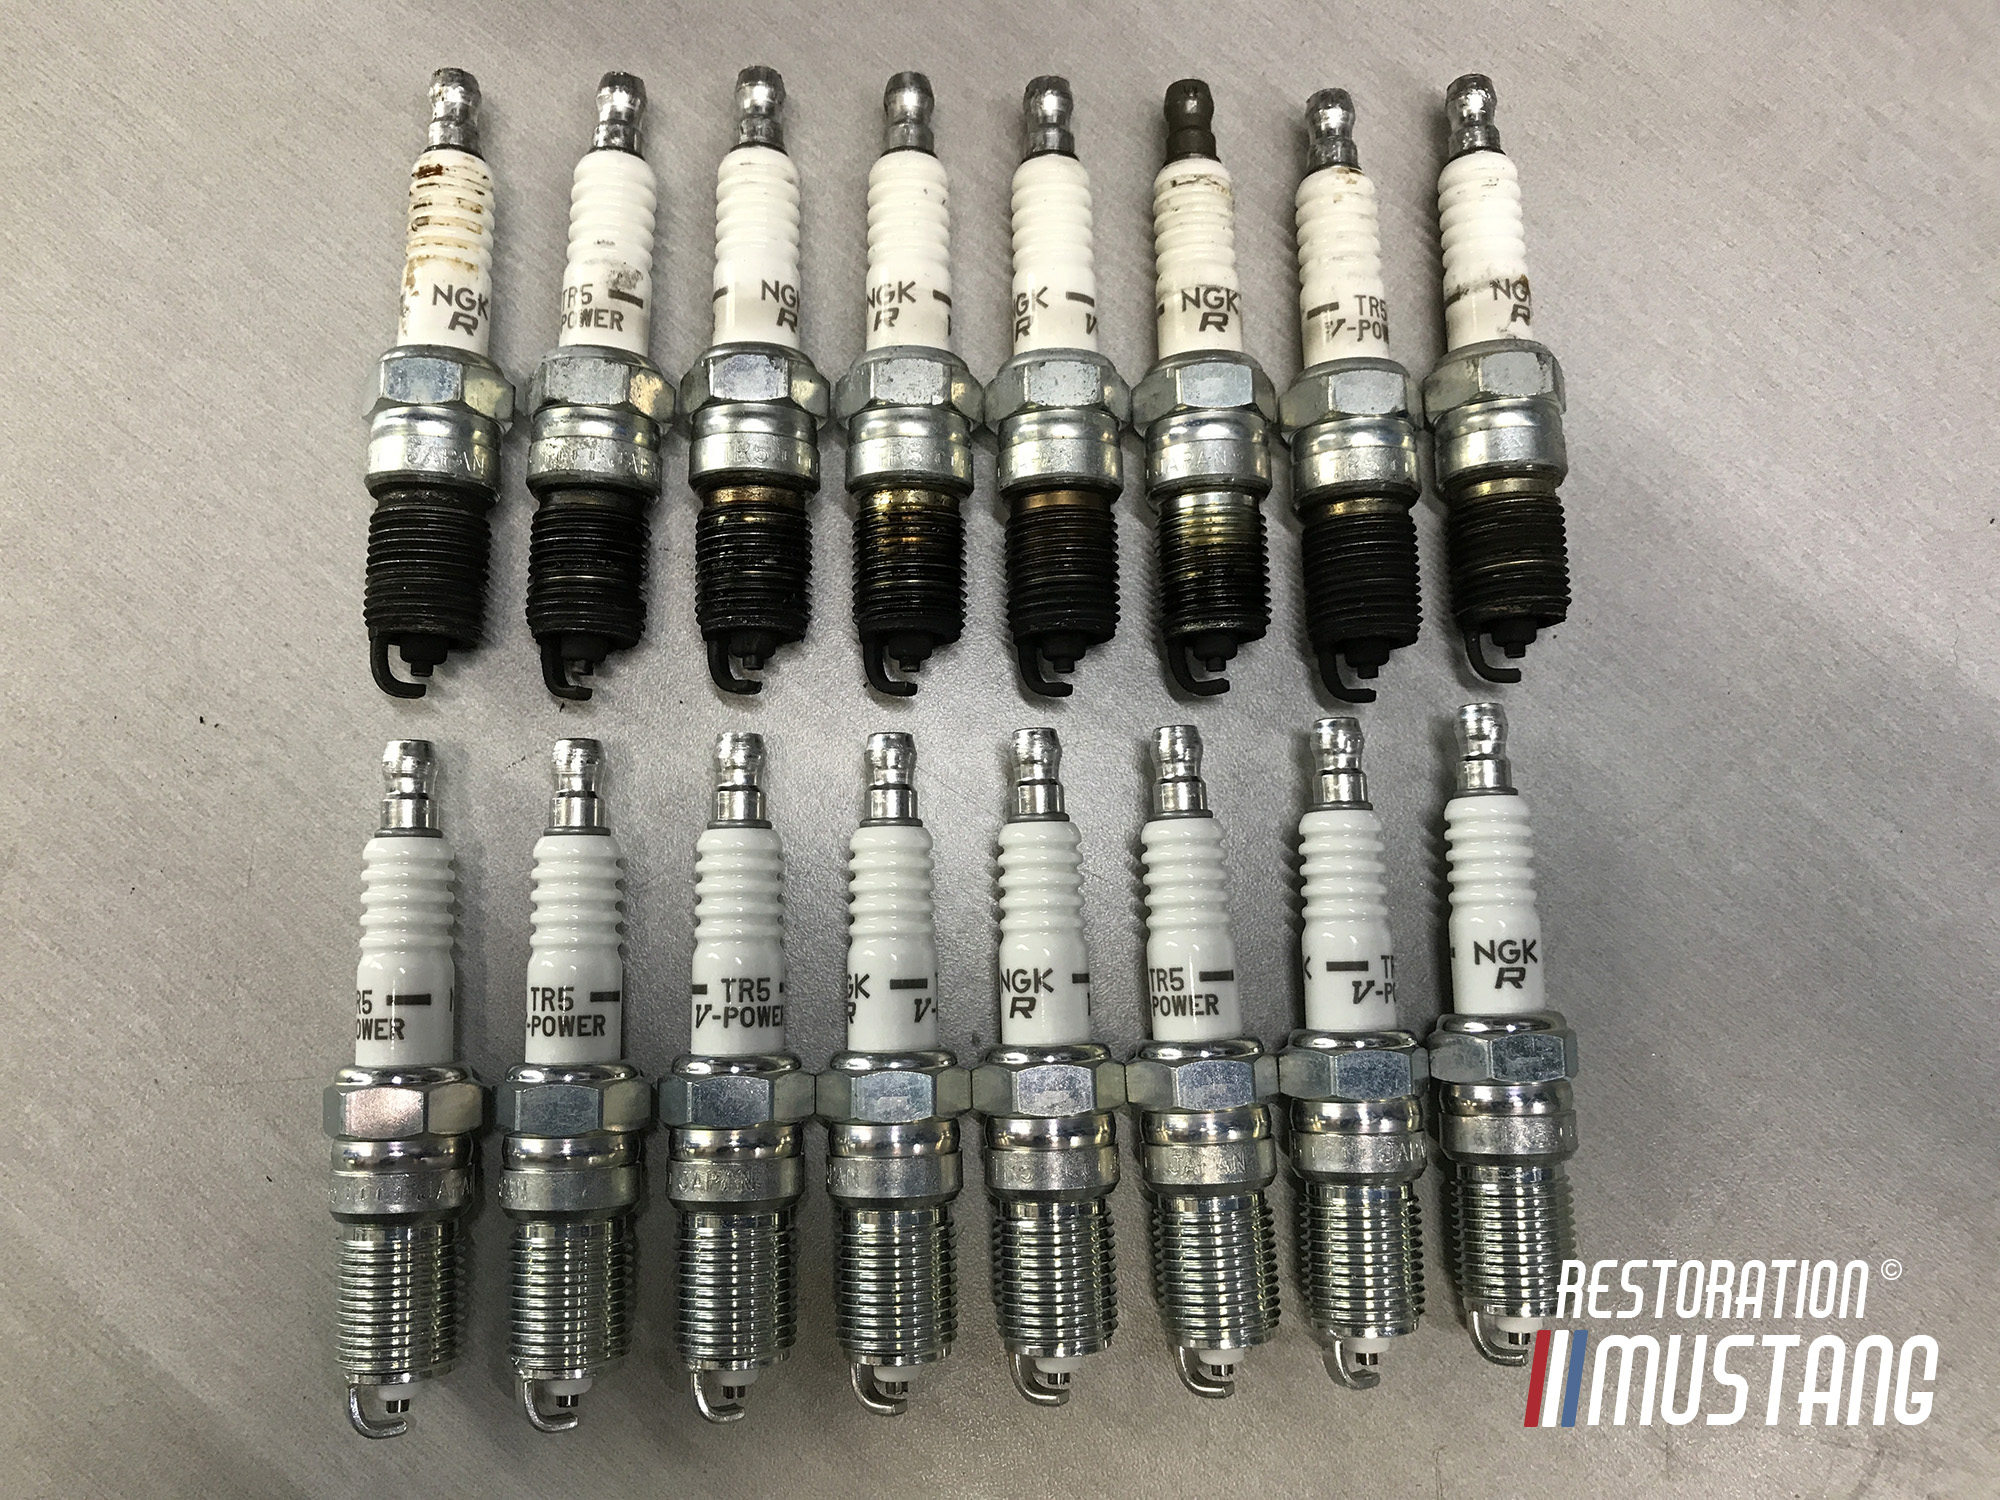 Here's What Fouled Spark Plugs Look Like | Running Too Rich